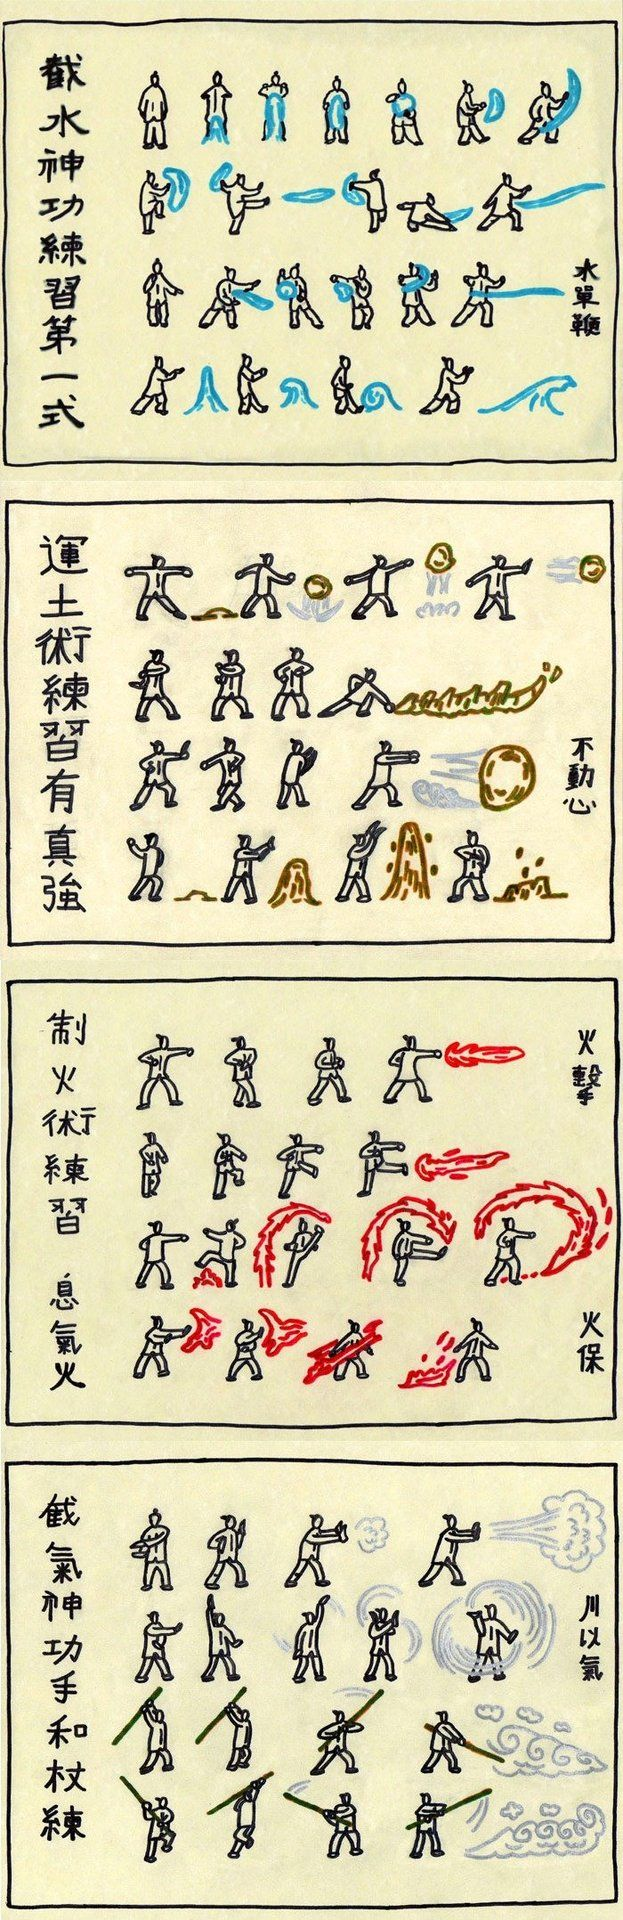 Element Bending Instructions. I want this as a poster for my walls!